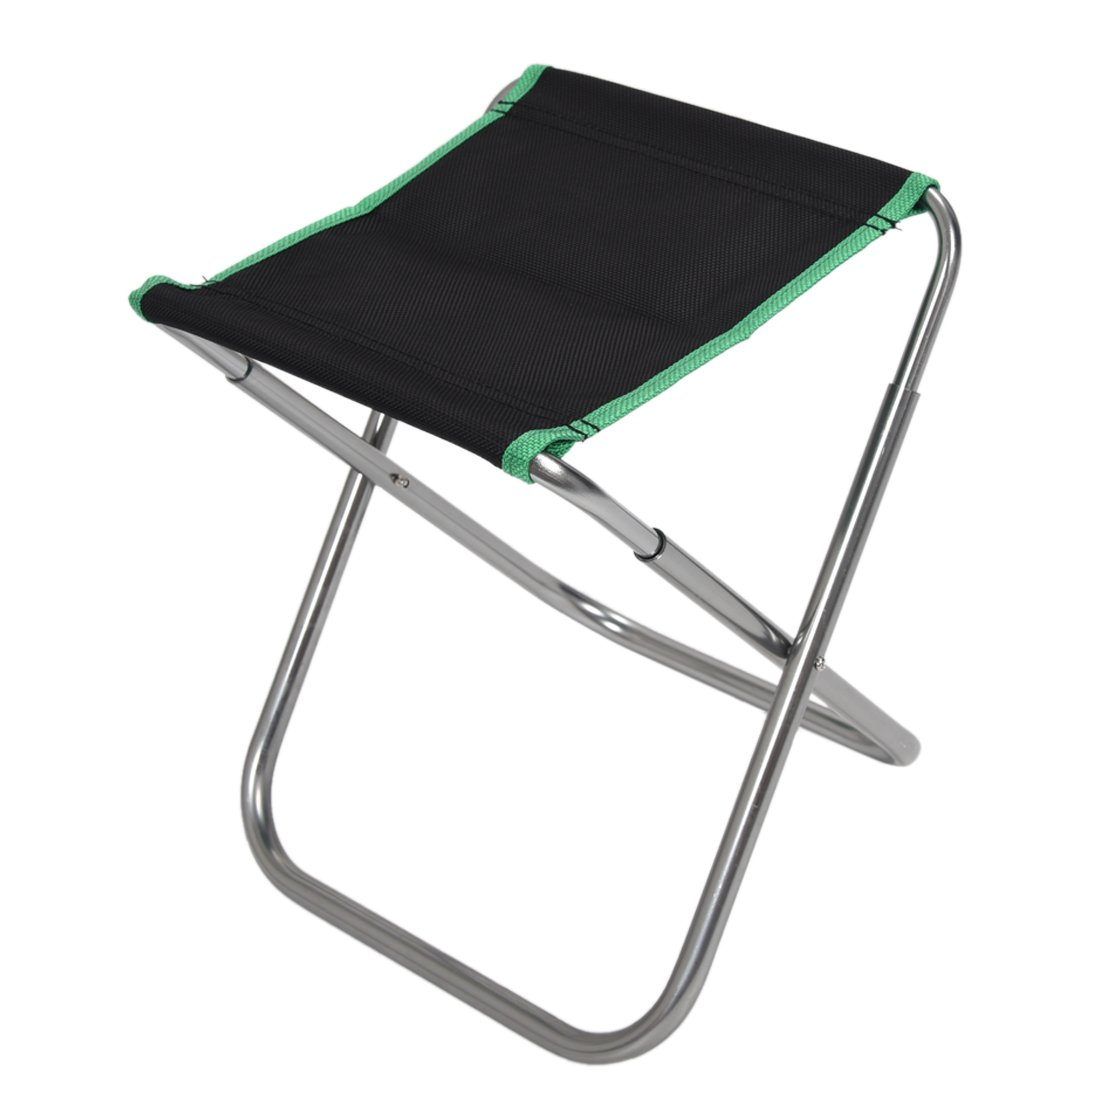 AOTU Portable Folding Oxford Cloth Chair Outdoor Patio Fishing Camping with Carry Bag by AOTU (Image #1)